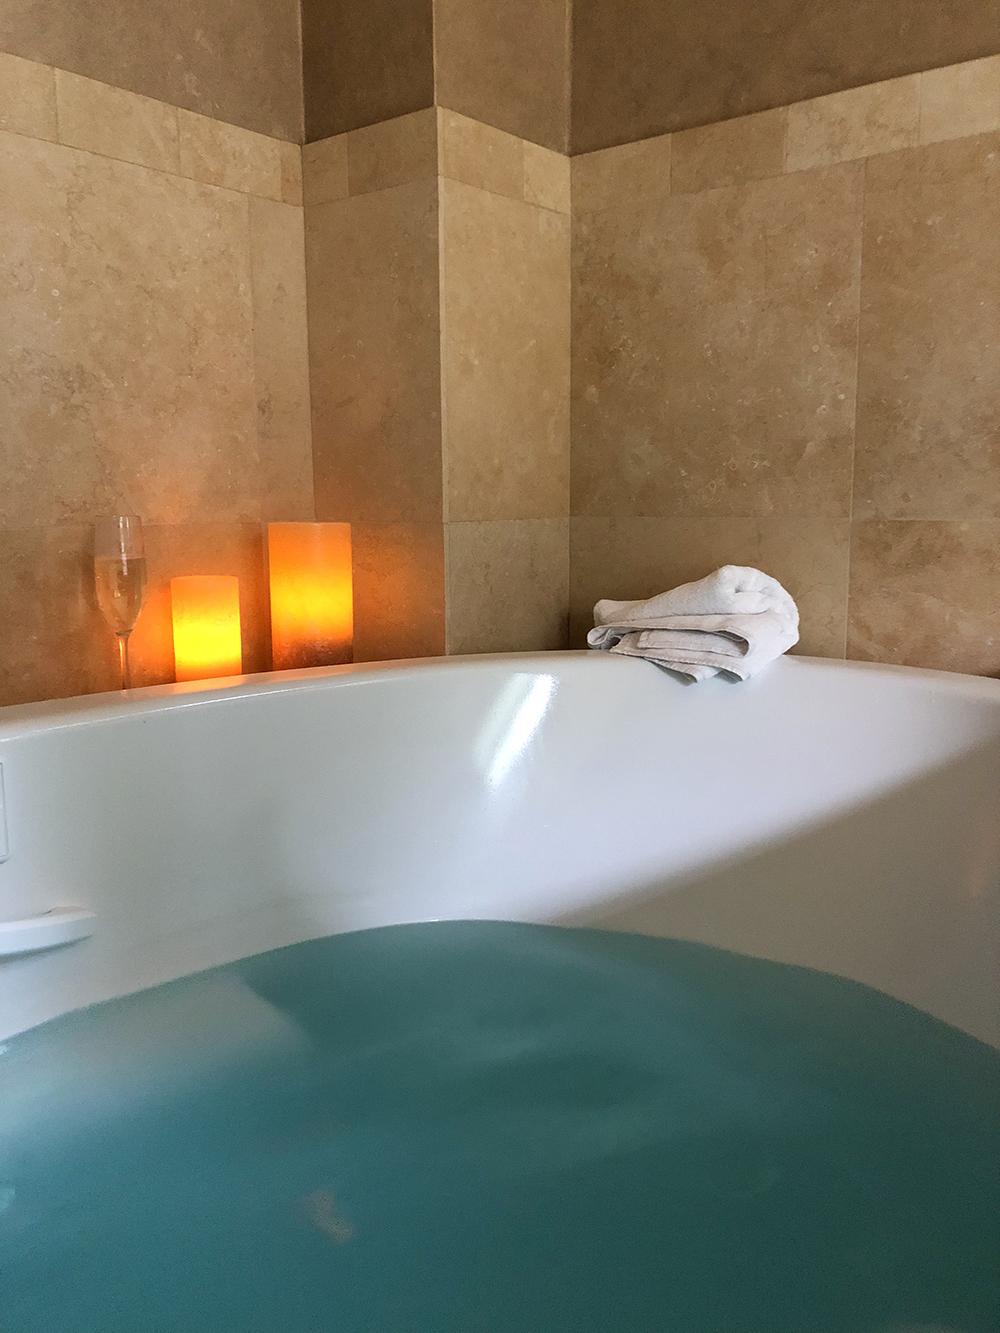 The bath accompanied by champagne and relaxing lighting.